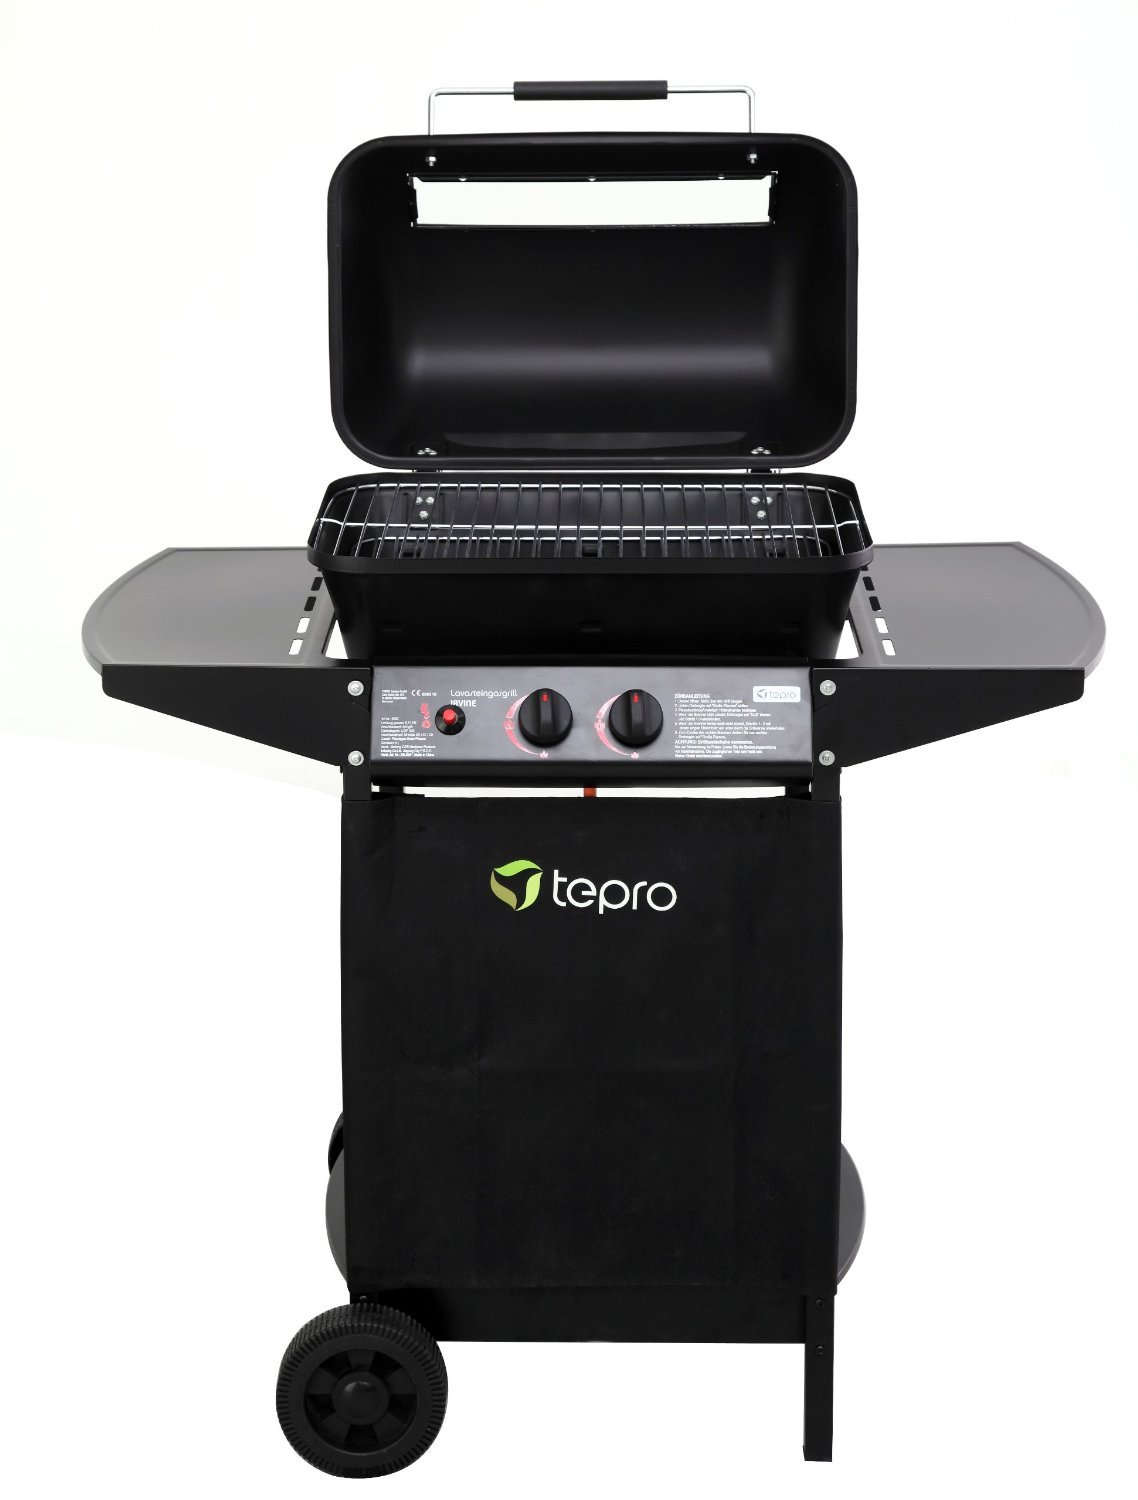 elektrogrill mit drehspie test kleinster mobiler gasgrill. Black Bedroom Furniture Sets. Home Design Ideas